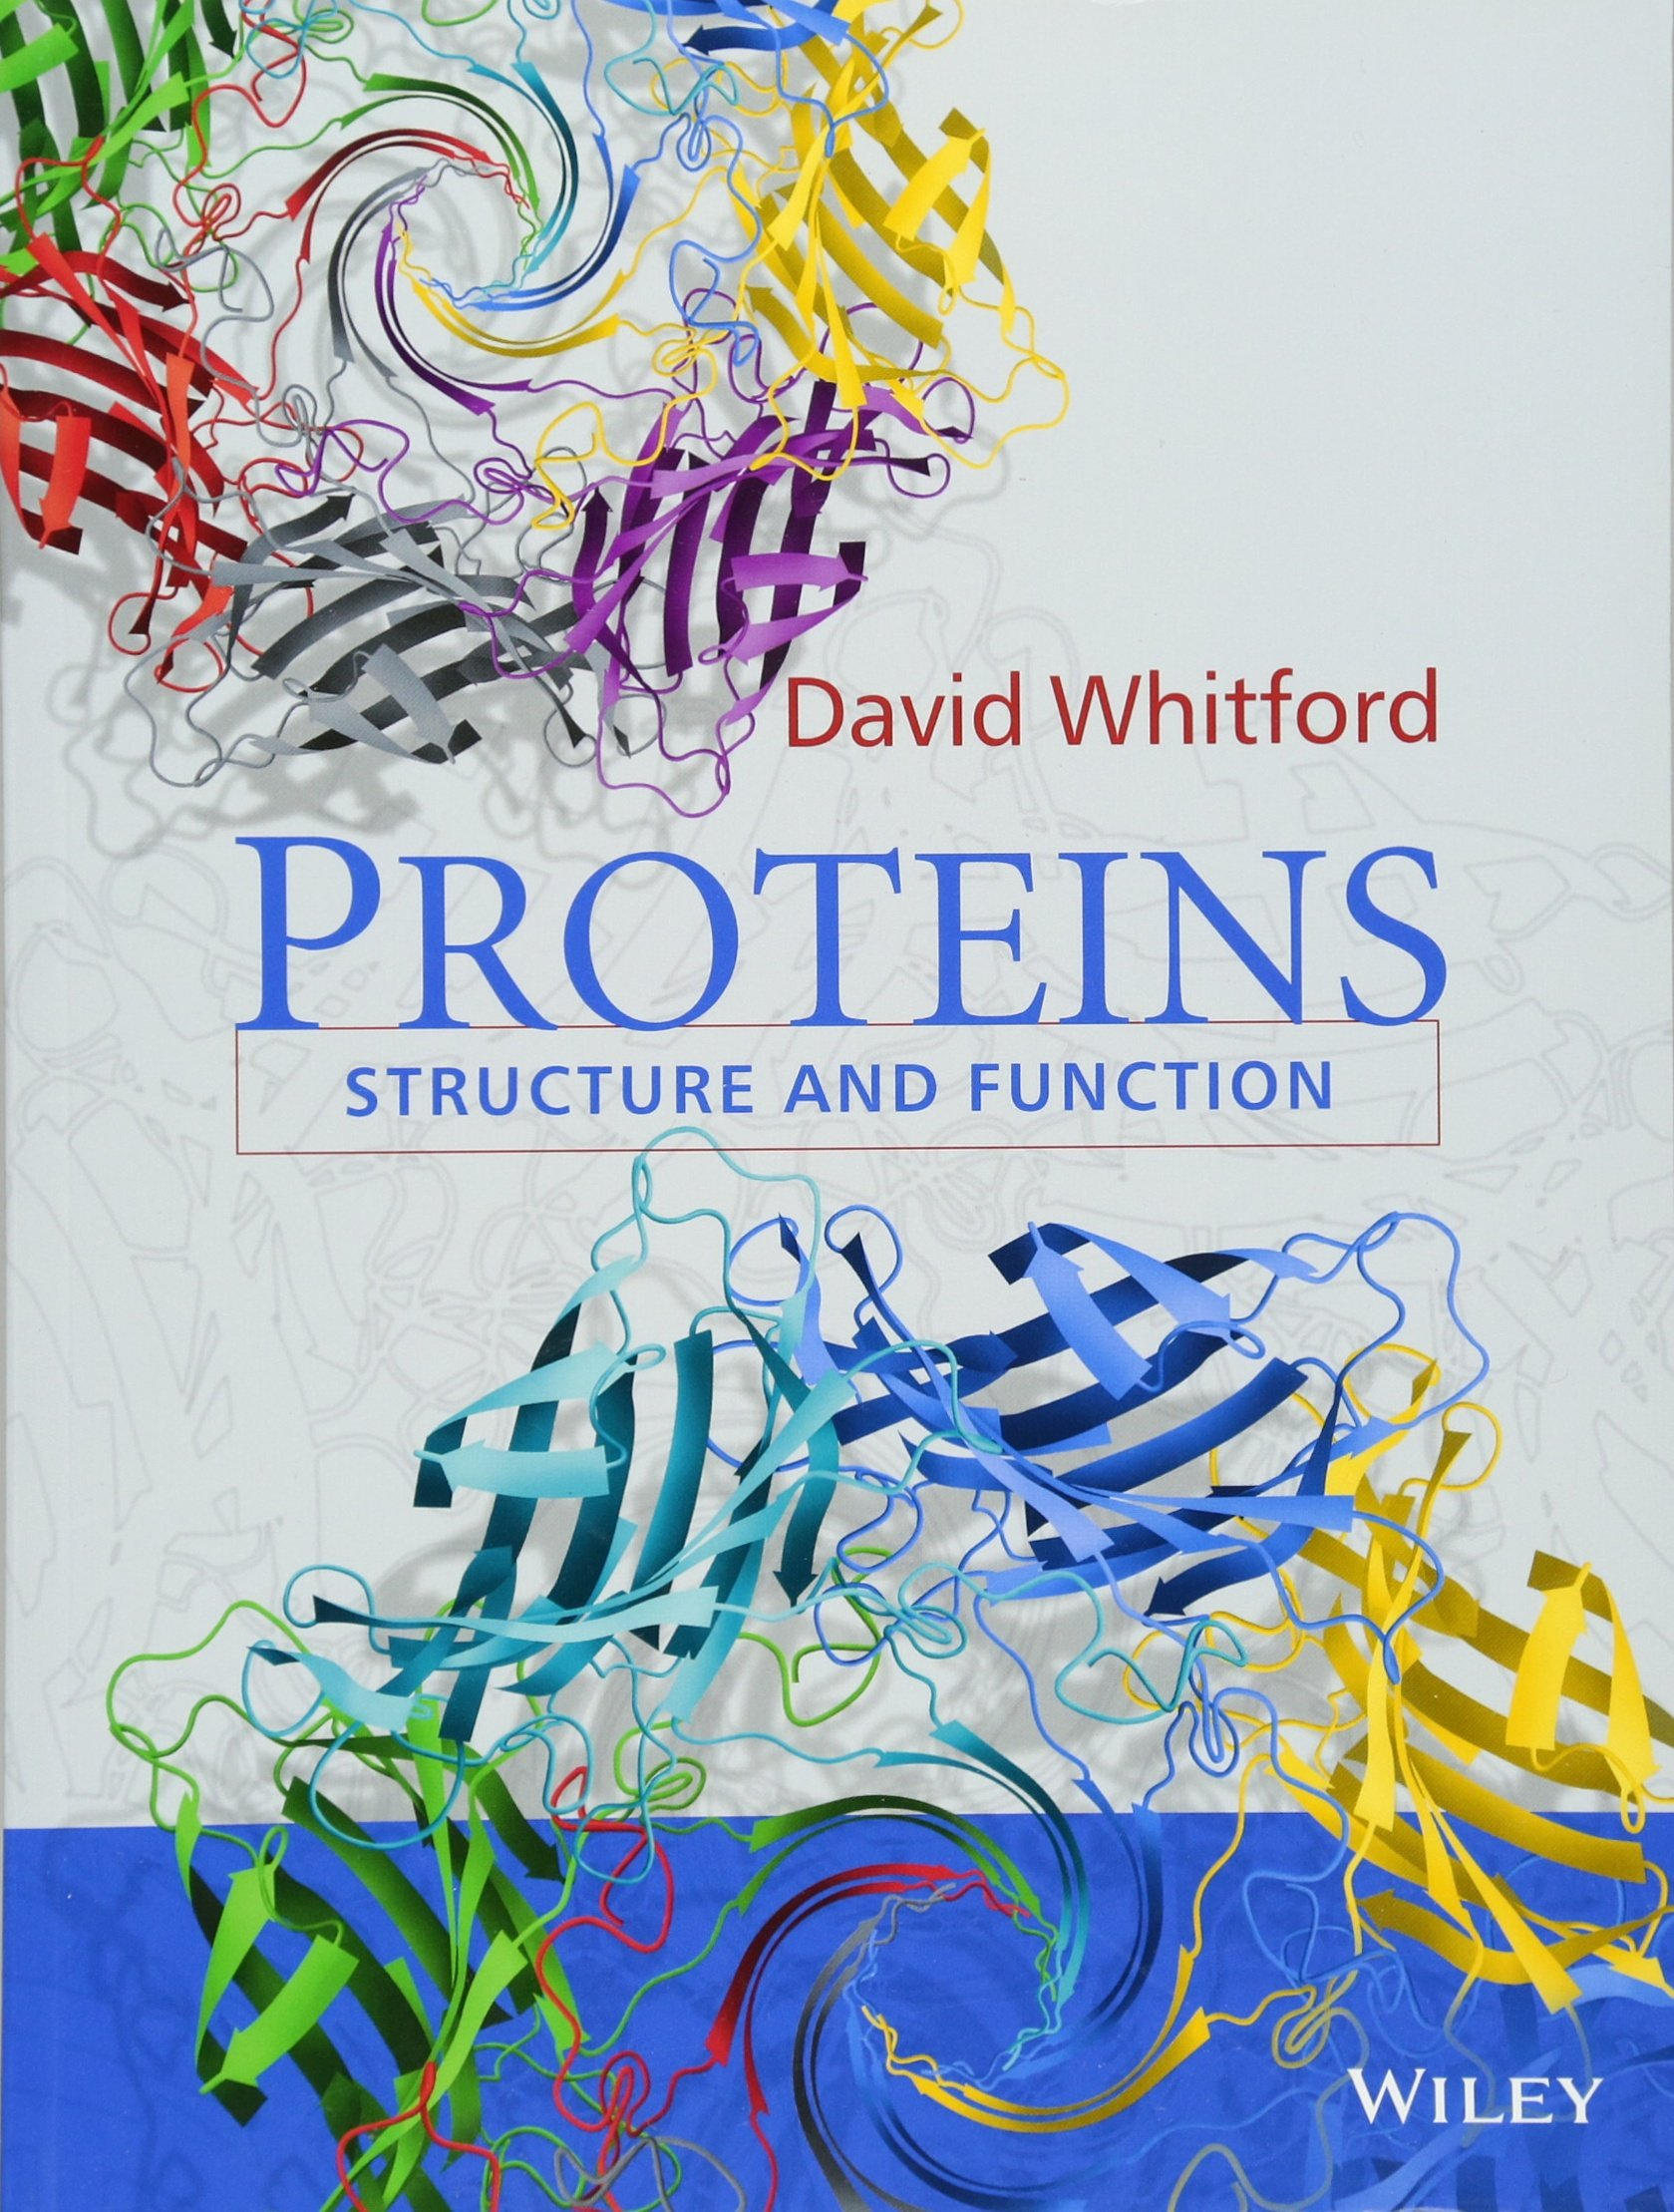 Proteins: Structure and Function by Wiley